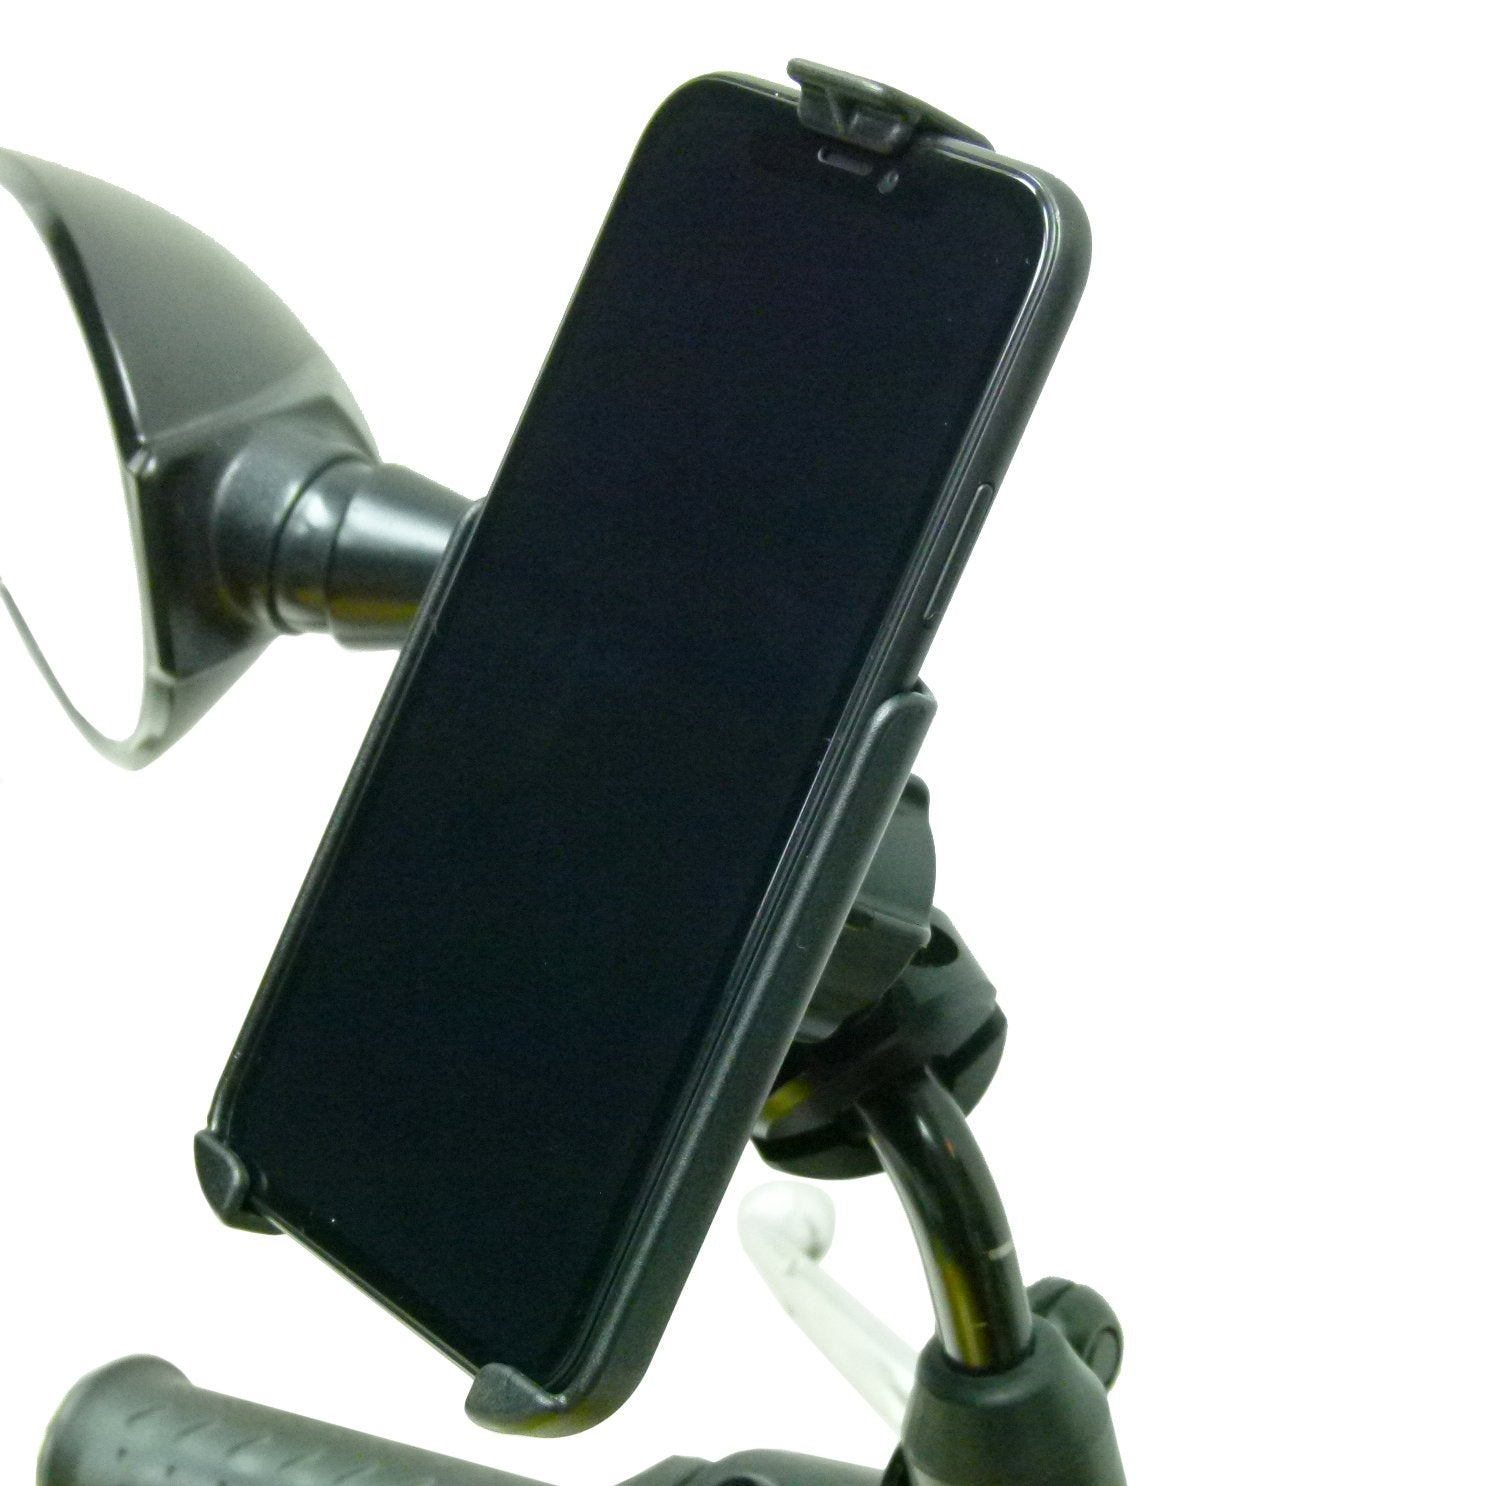 Motorcycle - Scooter Mirror Mount with Dedicated RAM Holder for iPhone 6 PLUS (sku 50386) - BuyBits Ltd UK